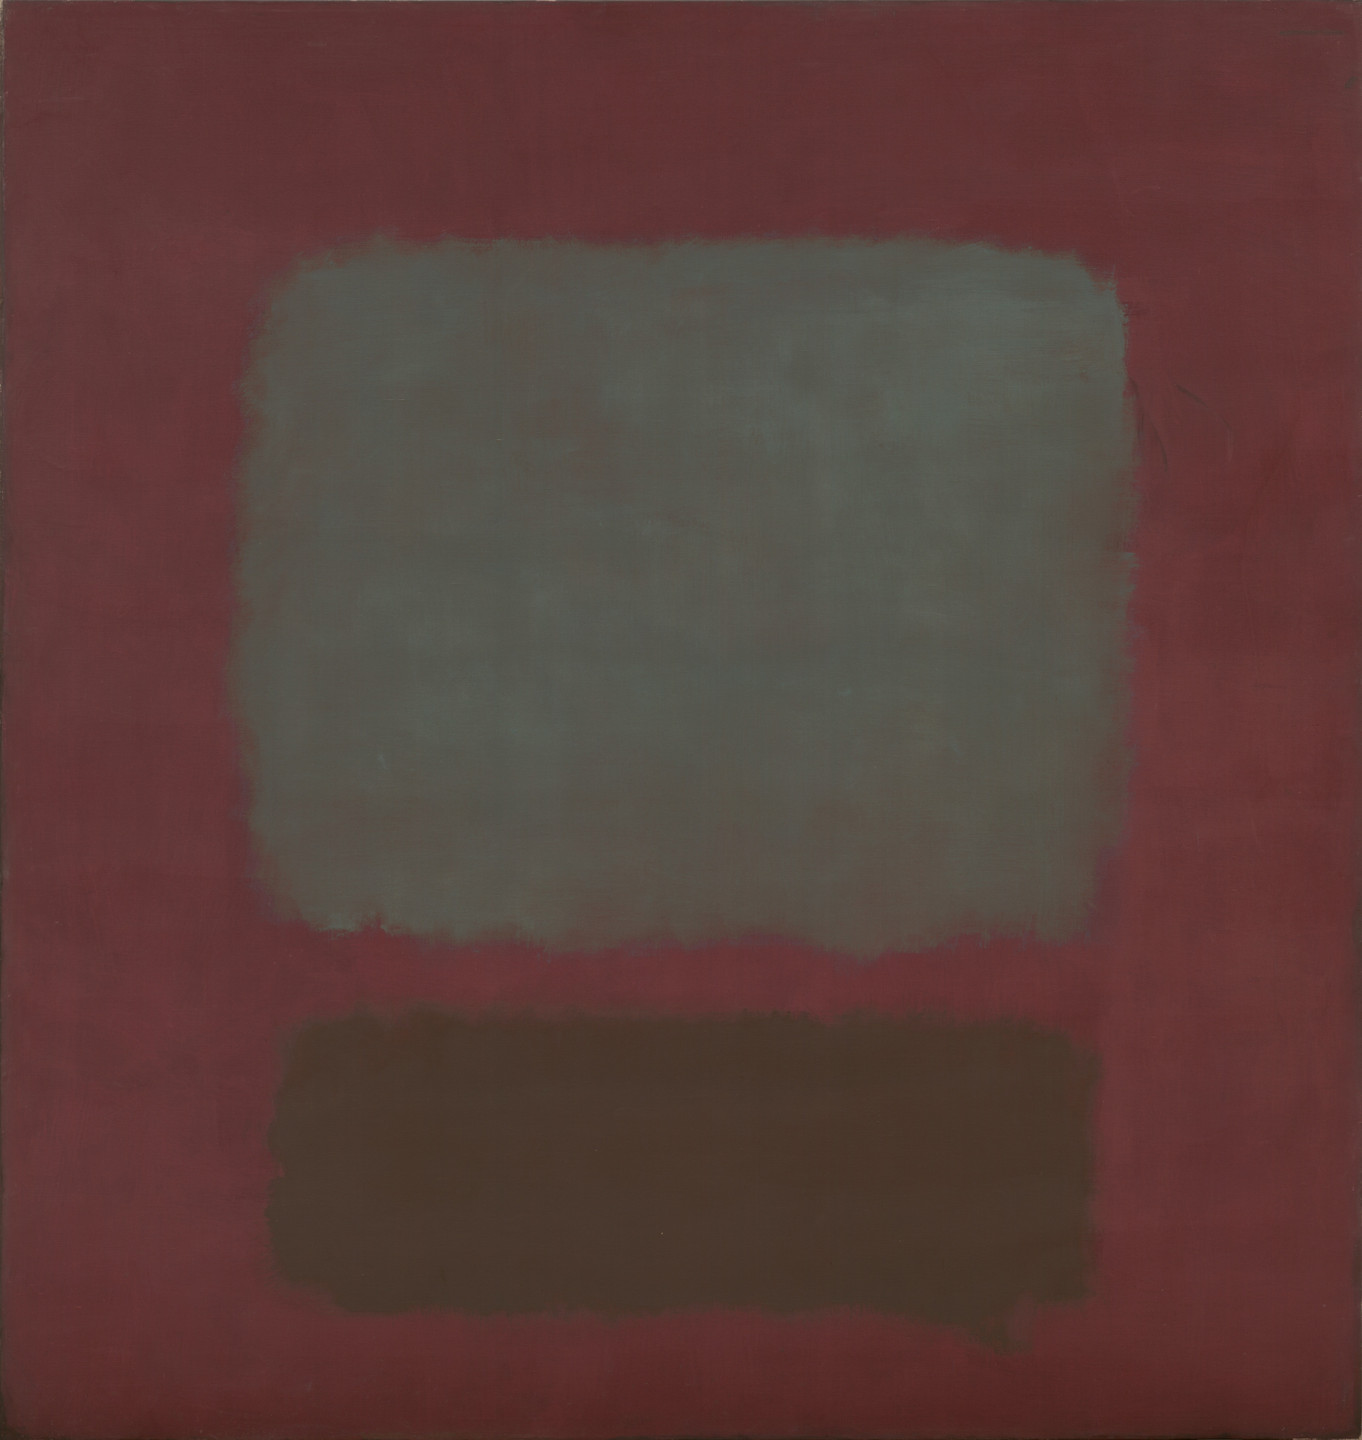 Mark Rothko. No. 37/No. 19 (Slate Blue and Brown on Plum). 1958